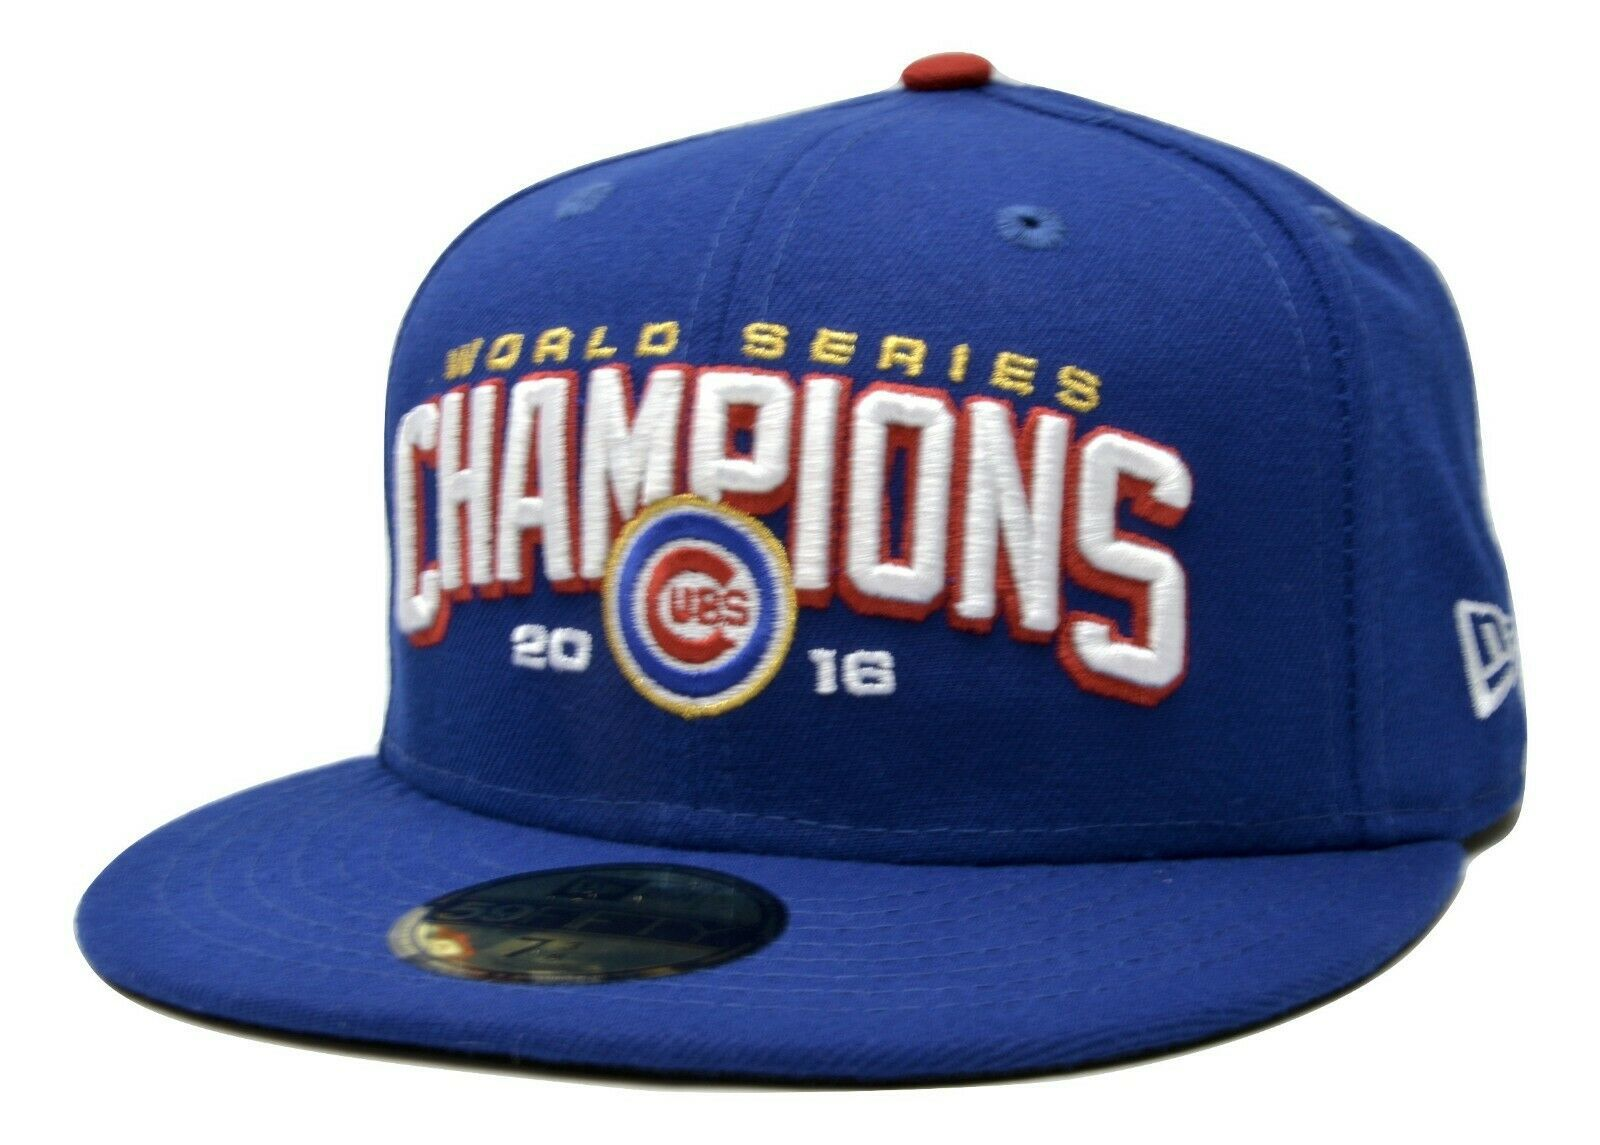 Primary image for Chicago Cubs New Era 59FIFTY MLB World Series Champions Fitted Cap Hat 7 3/8